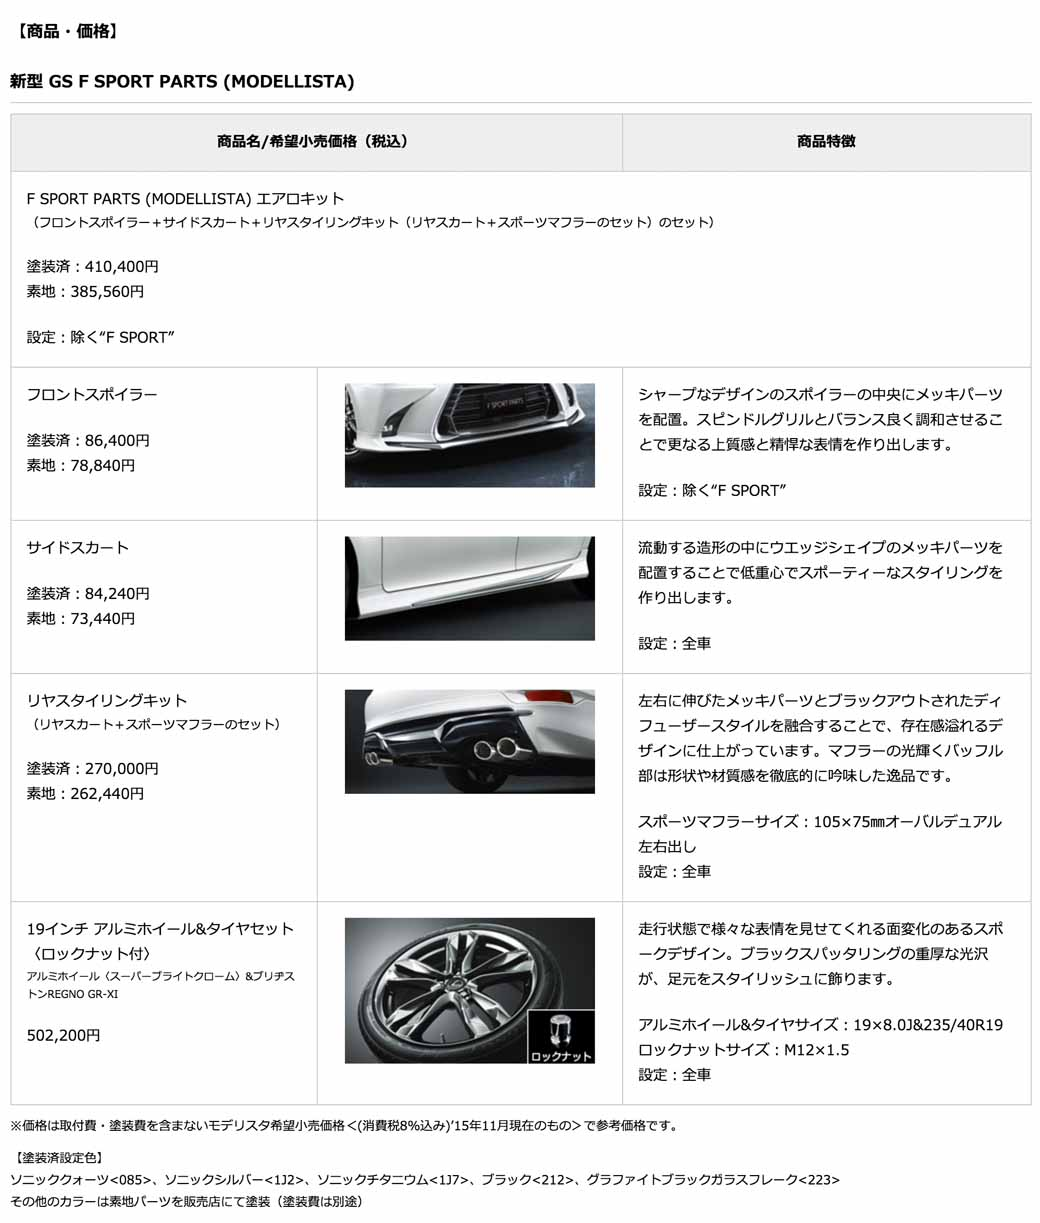 toyota-modellista-international-launched-a-customized-item-for-the-new-gs20151127-2